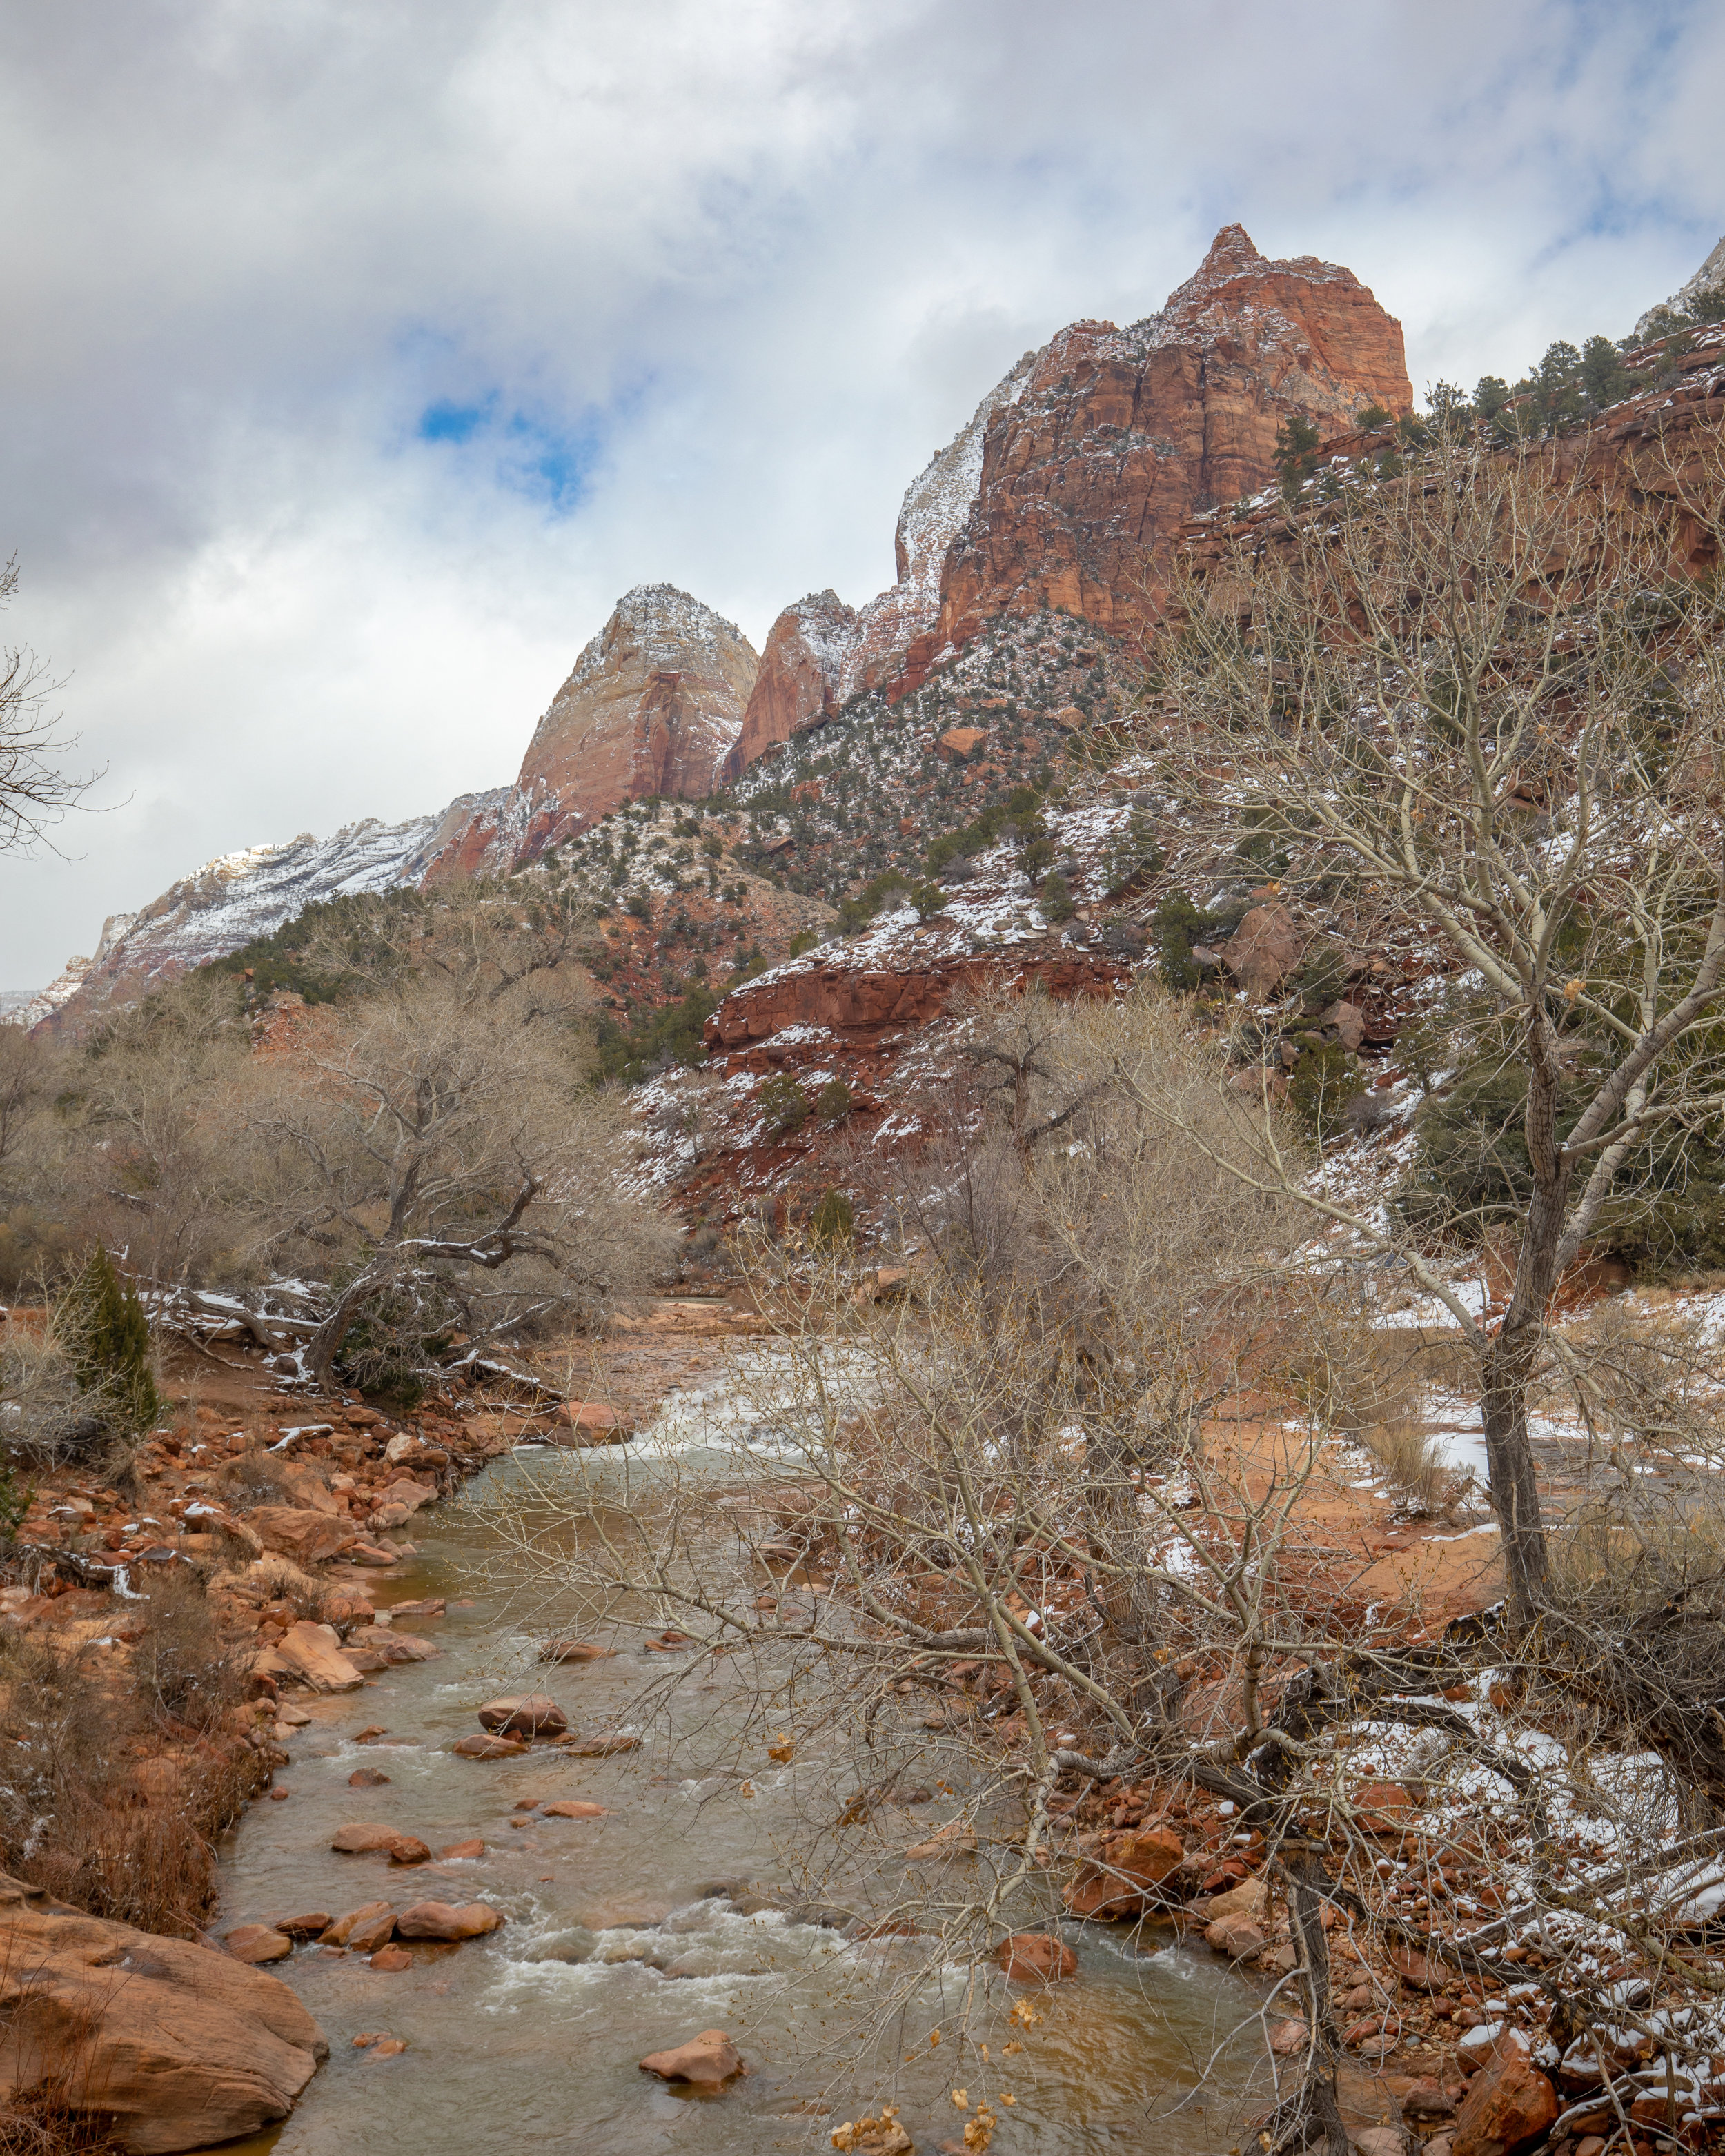 The Virgin River that follows the Par'us Trail